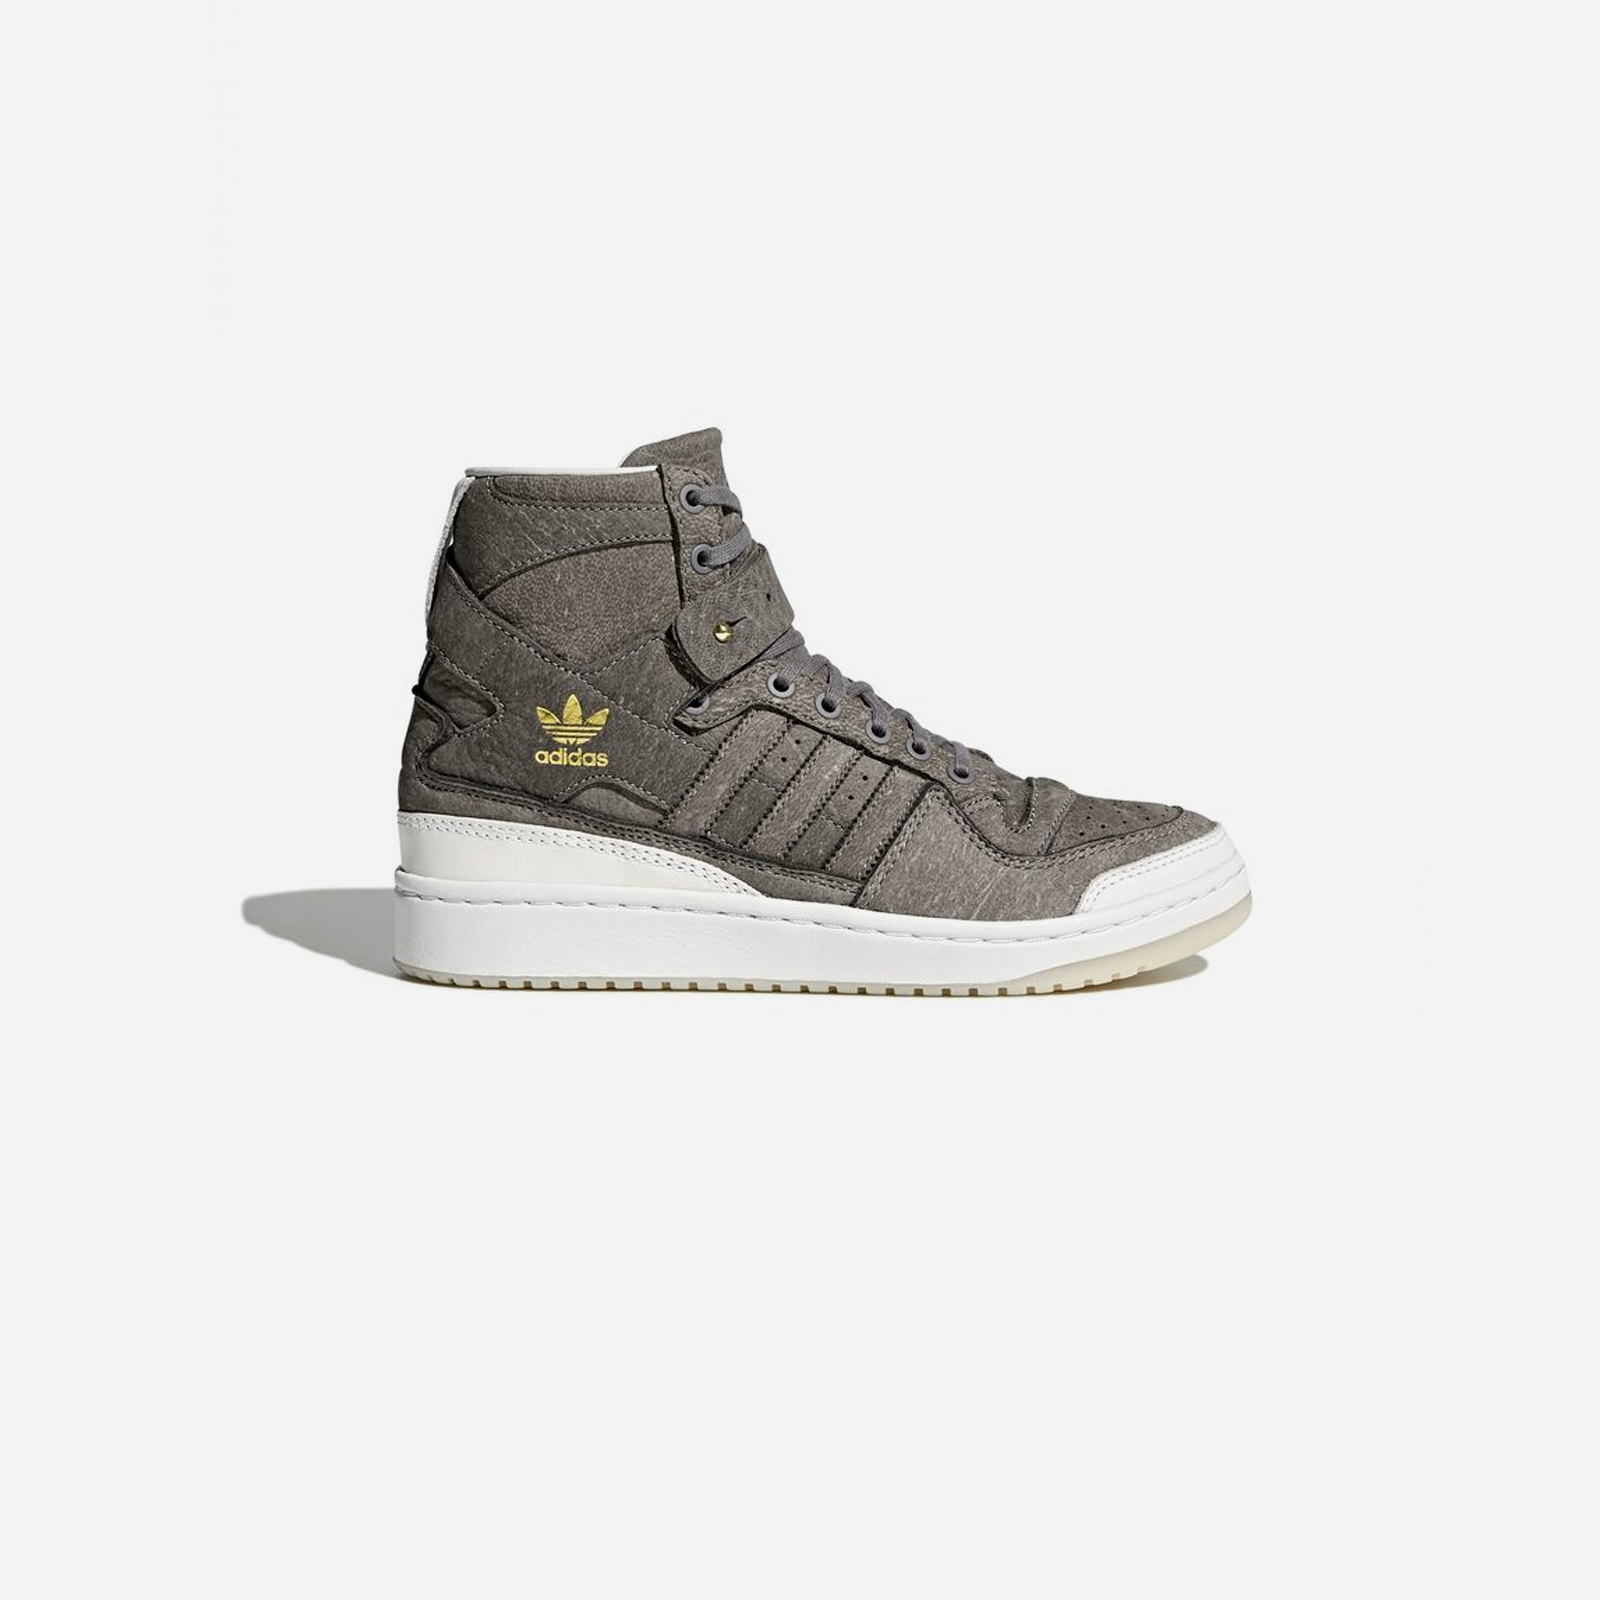 new styles 20128 6d4d7 adidas Forum Hi Crafted - Bw1253 - Sneakersnstuff | sneakers ...